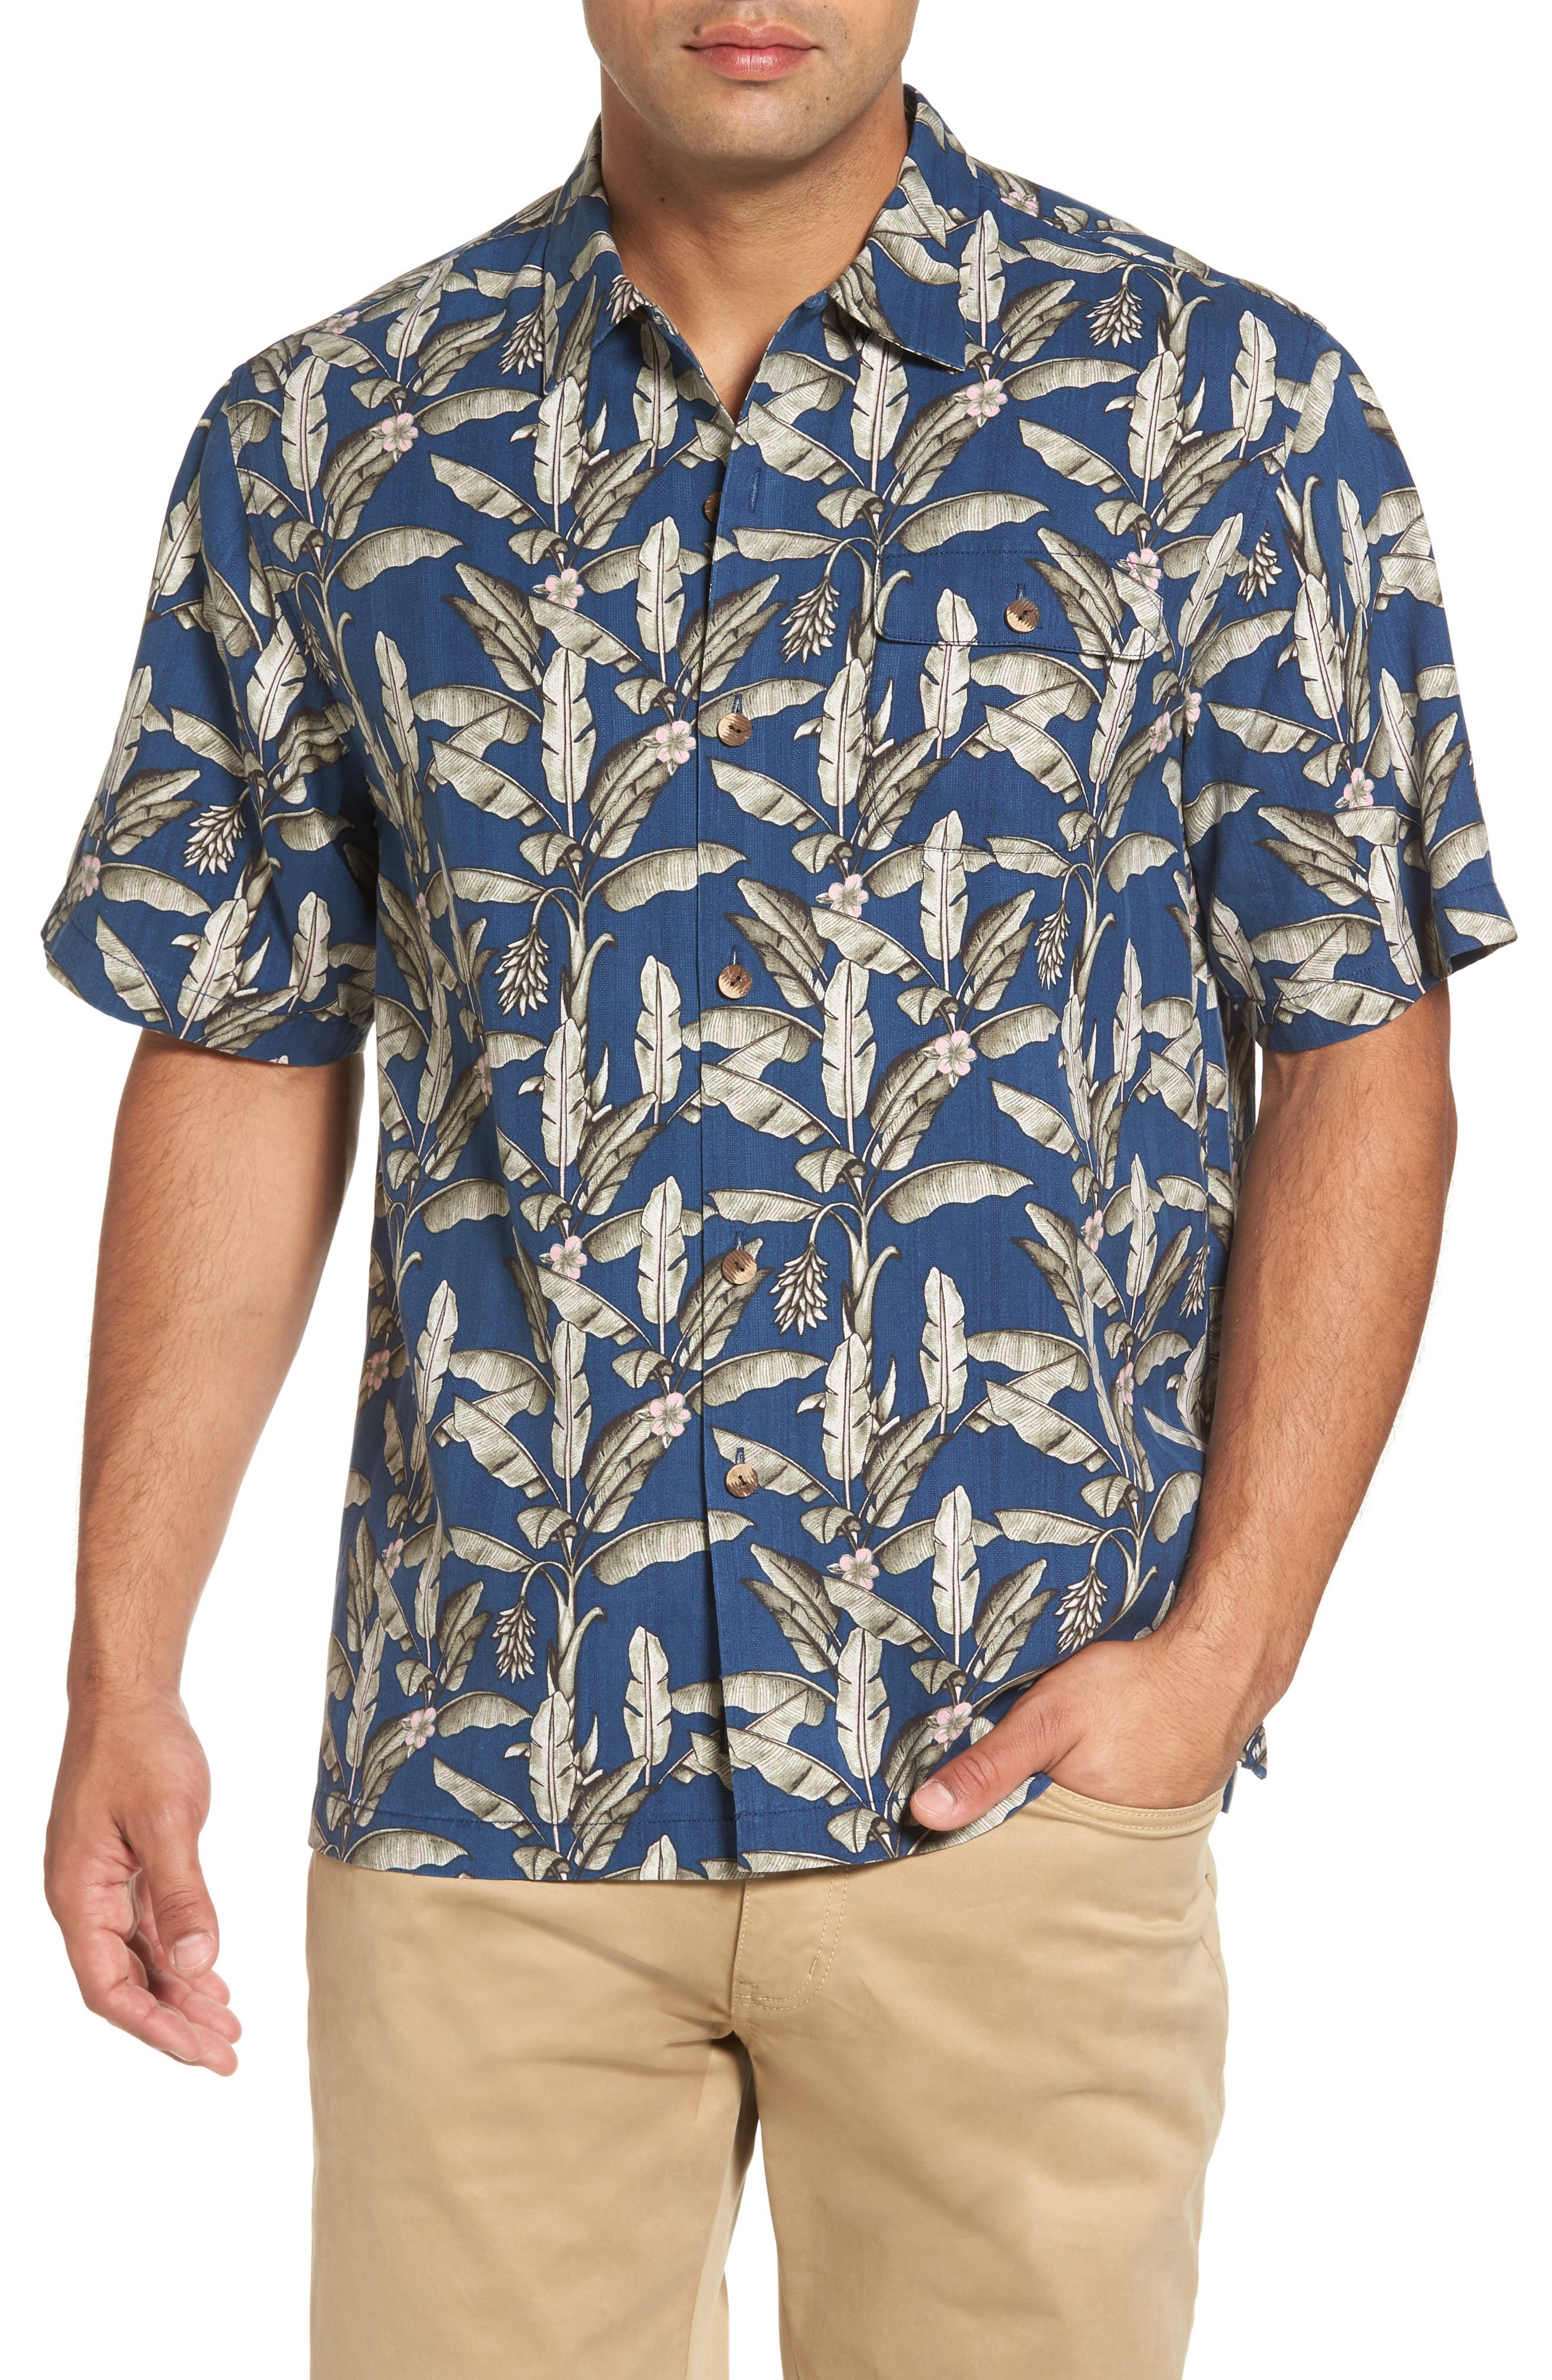 Shirts for Men, Men's Tommy Bahama Tropical Shirts | Nordstrom